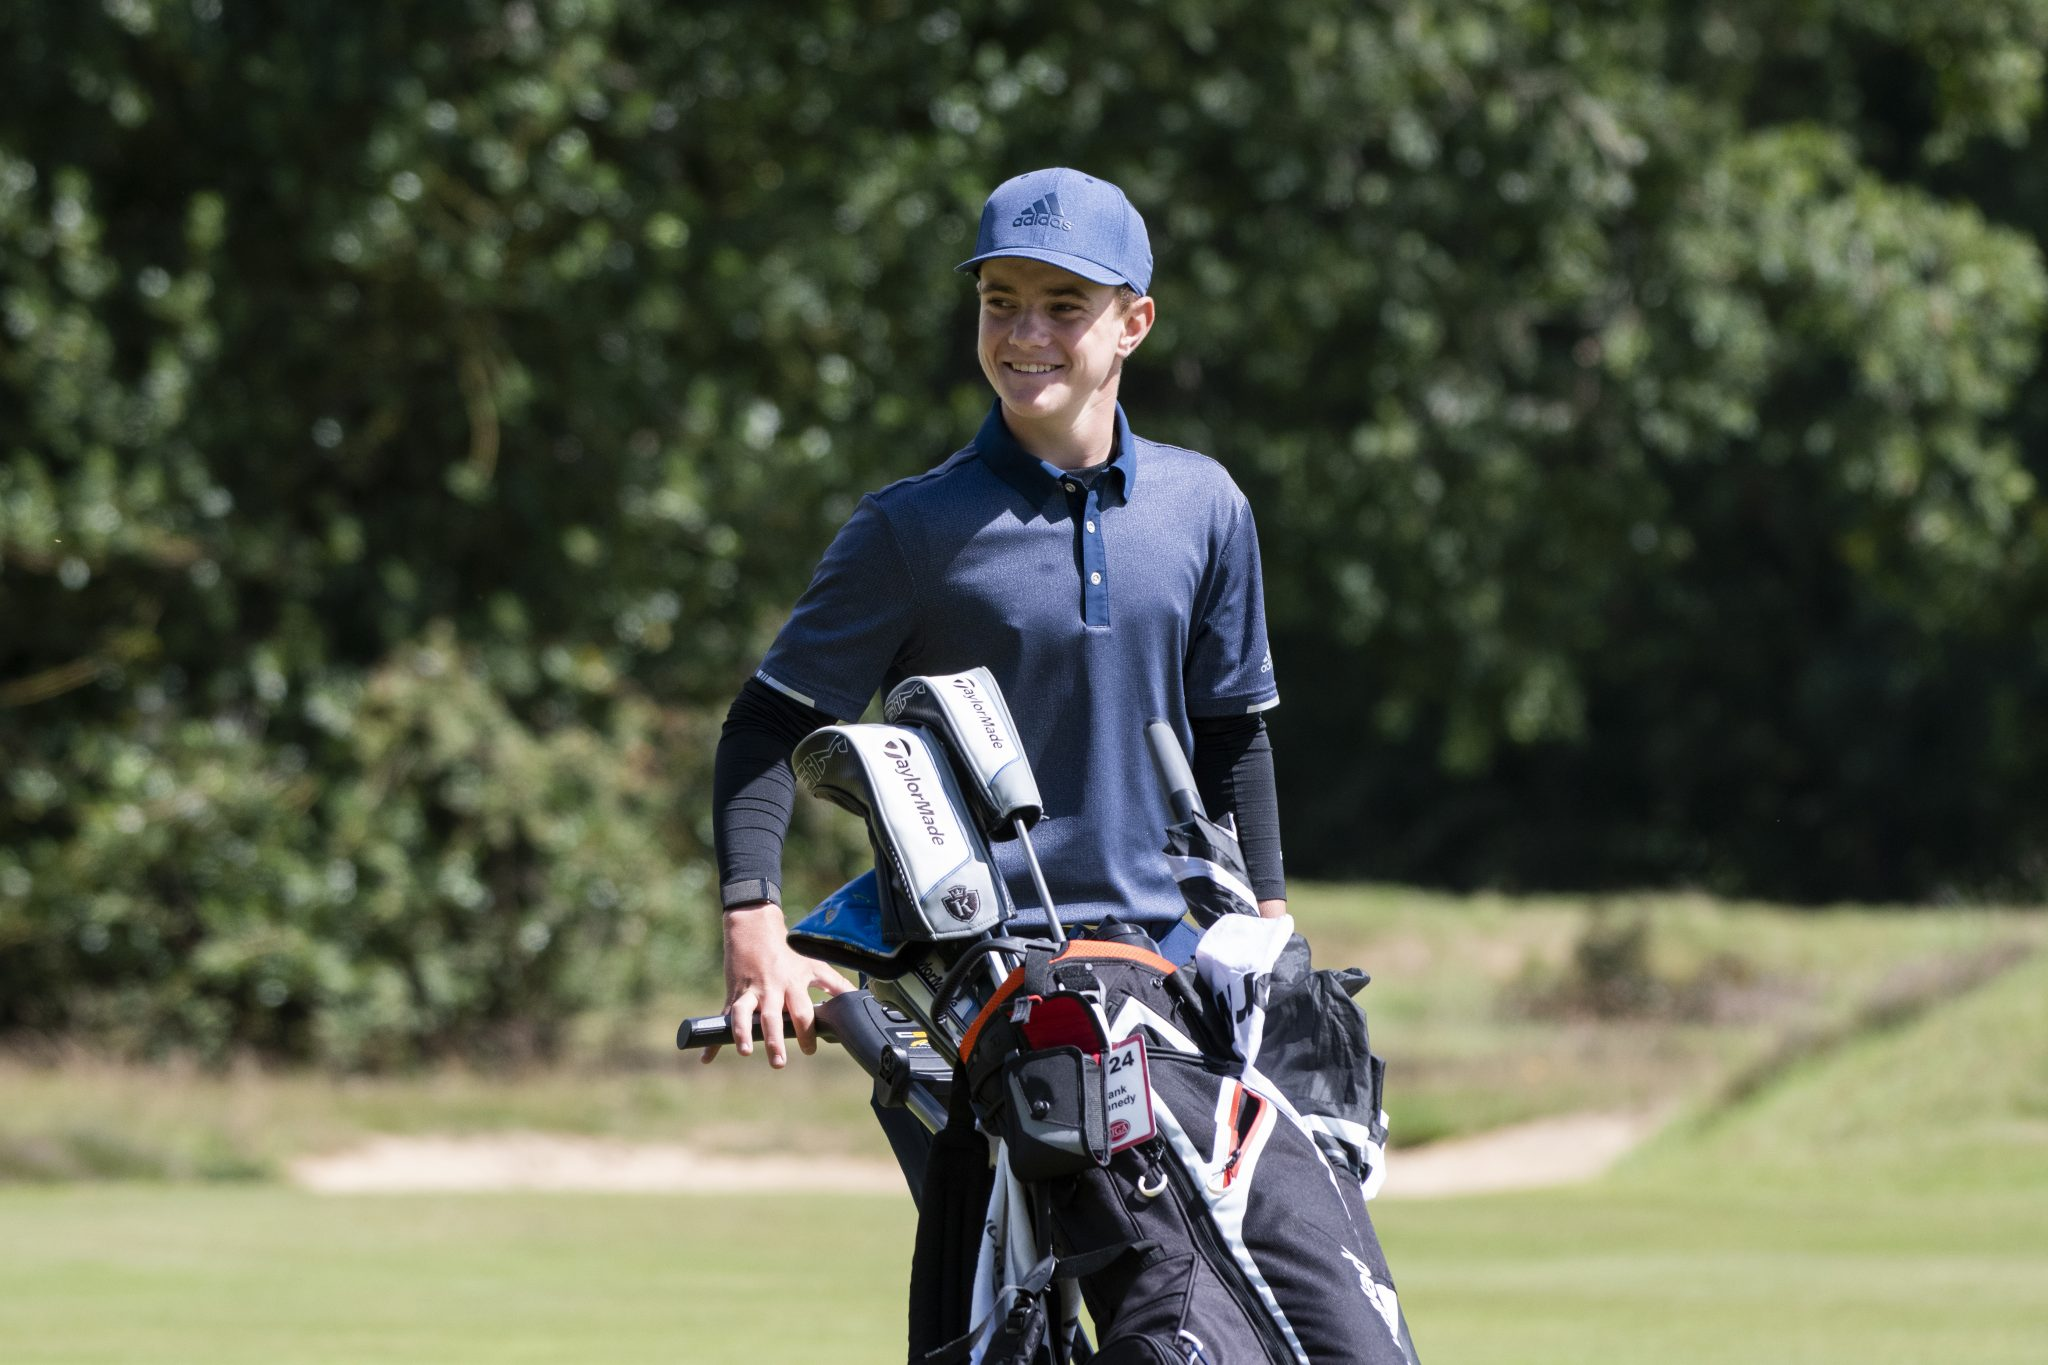 Carris Trophy: Kennedy aiming high after summer of learning